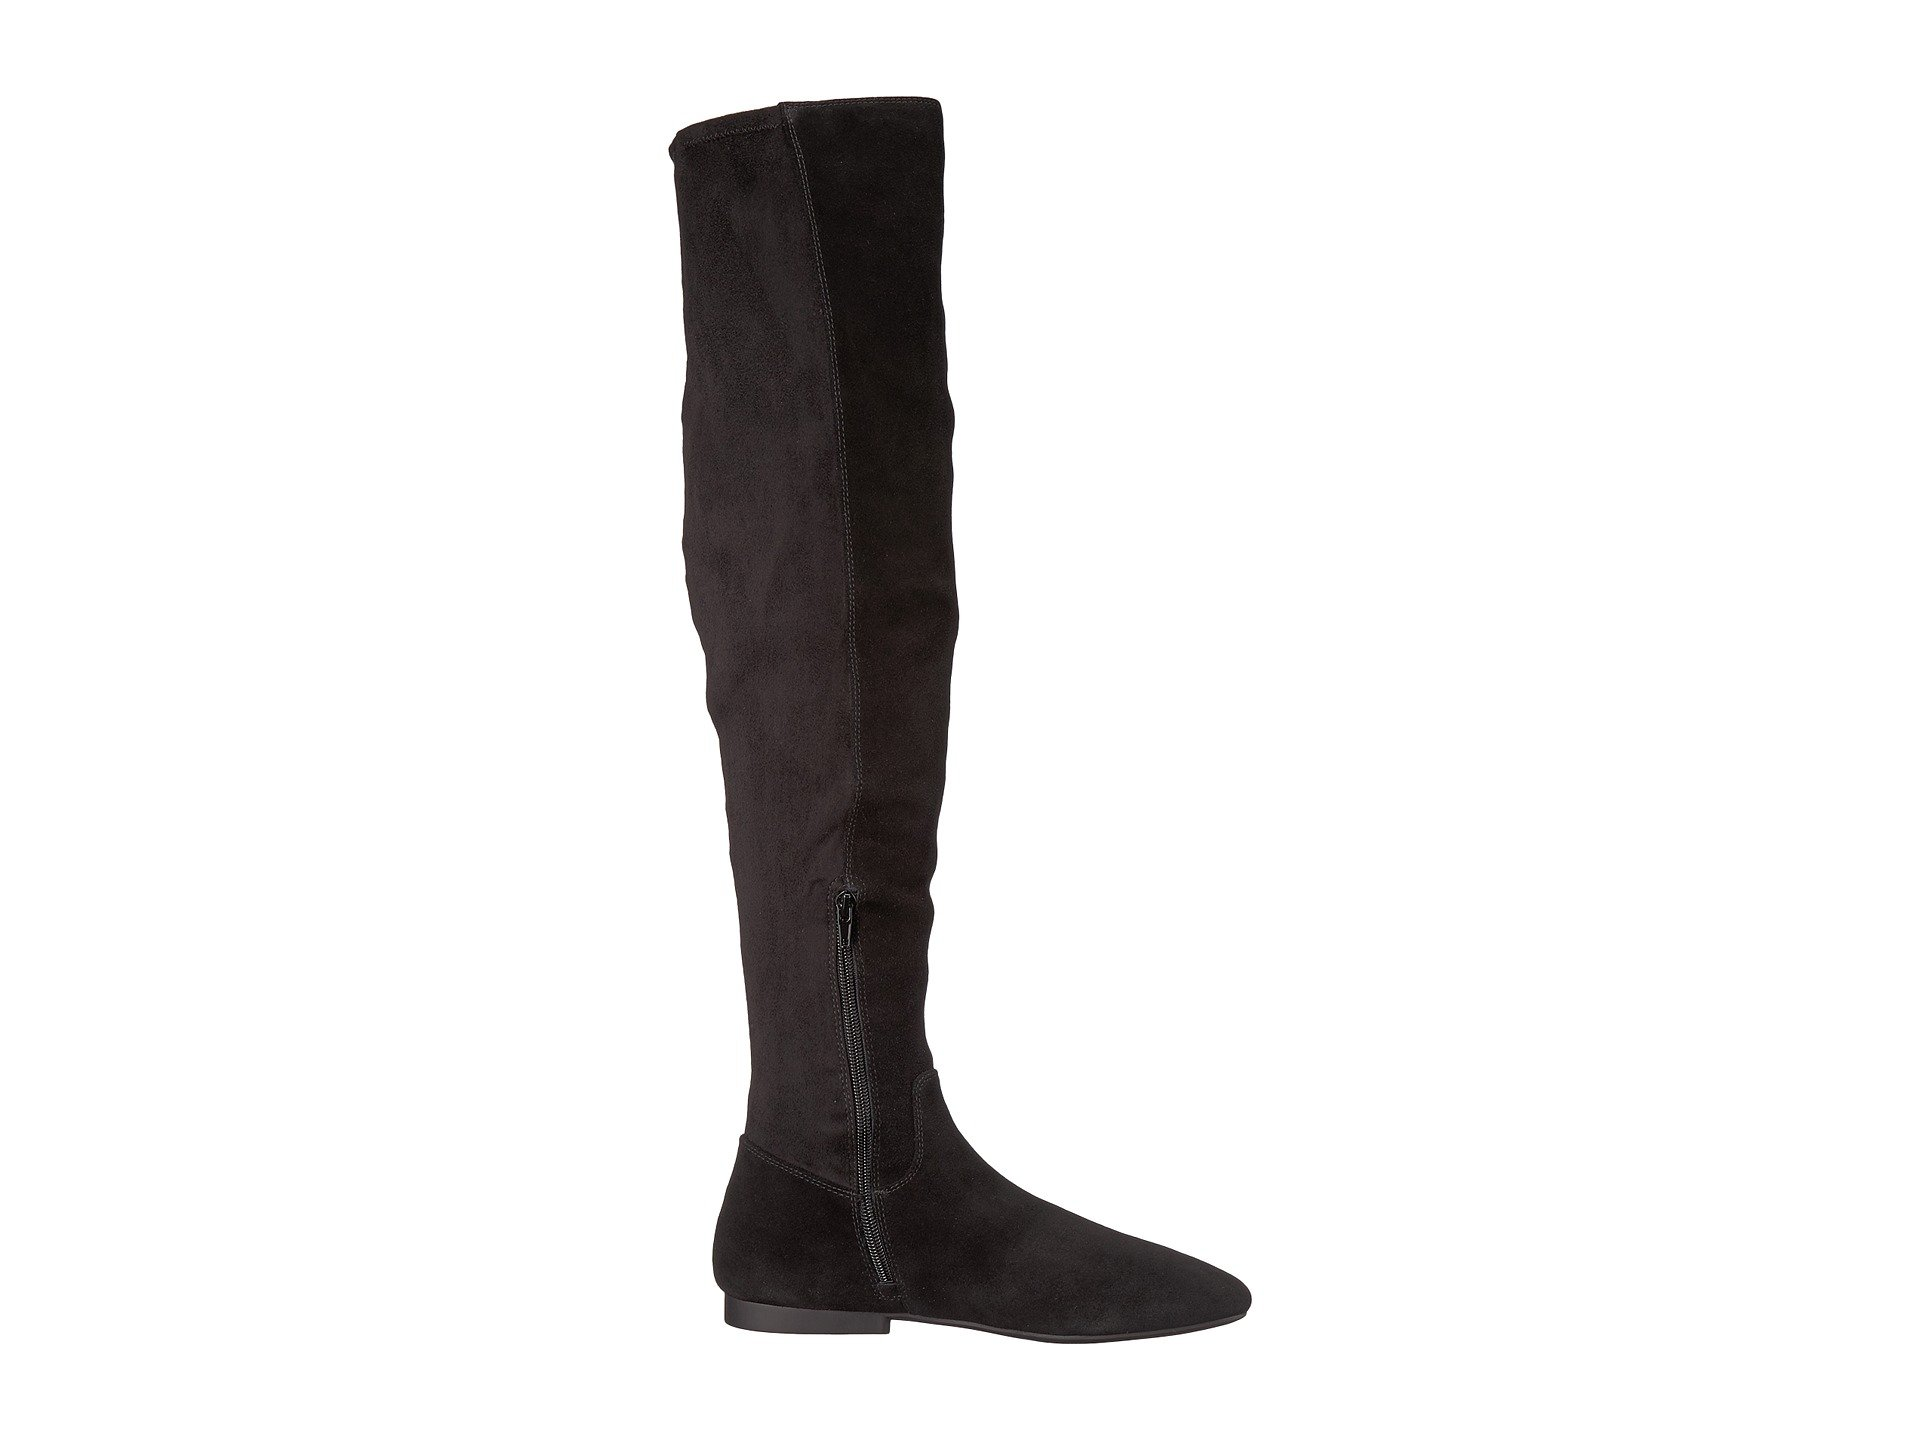 a76ff0f3069 Lucky Brand Jeans GAVINA Women s Over The Knee Boots